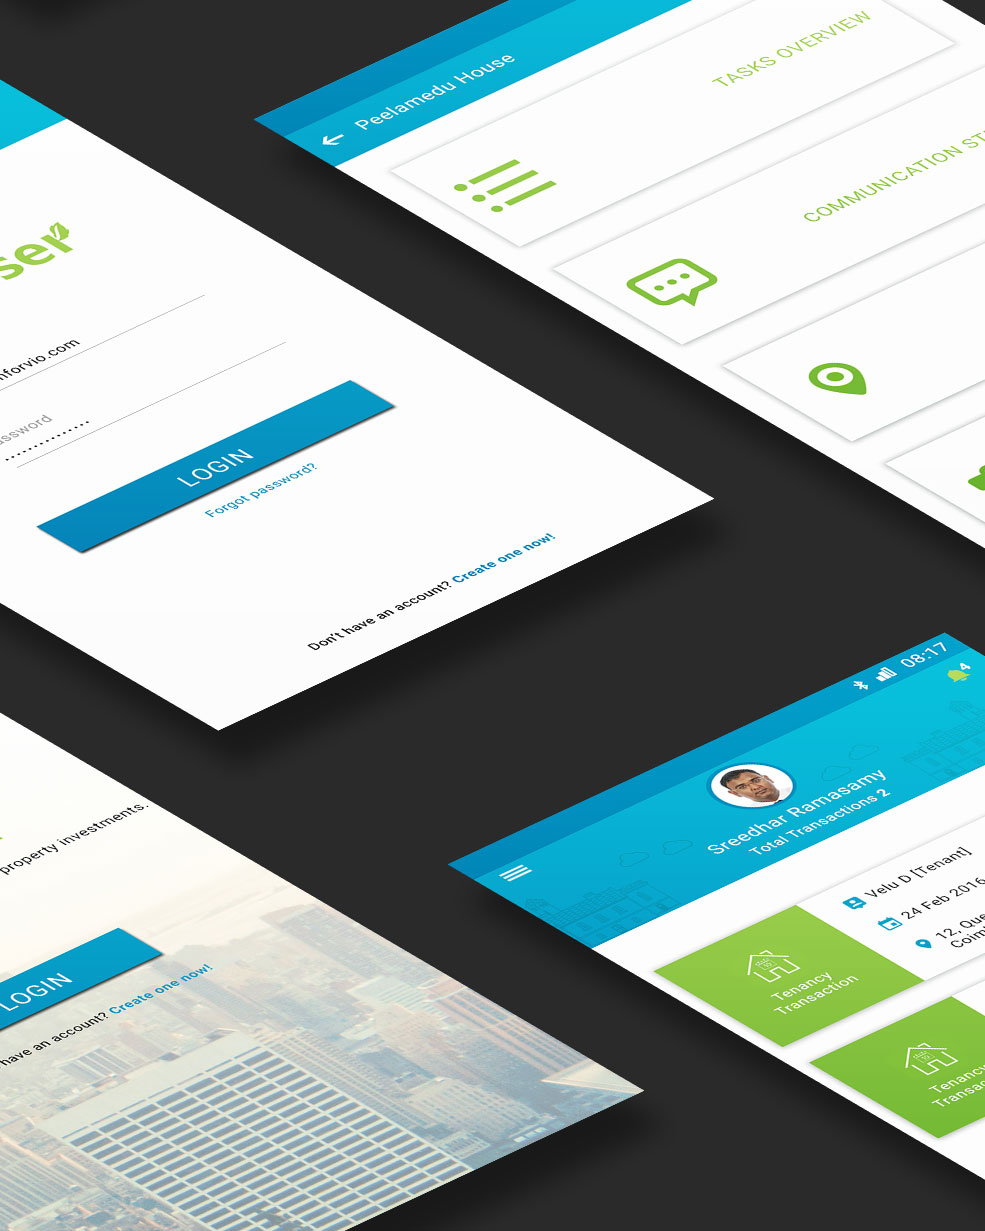 UI, UX and Mobile app mockup for Propwiser